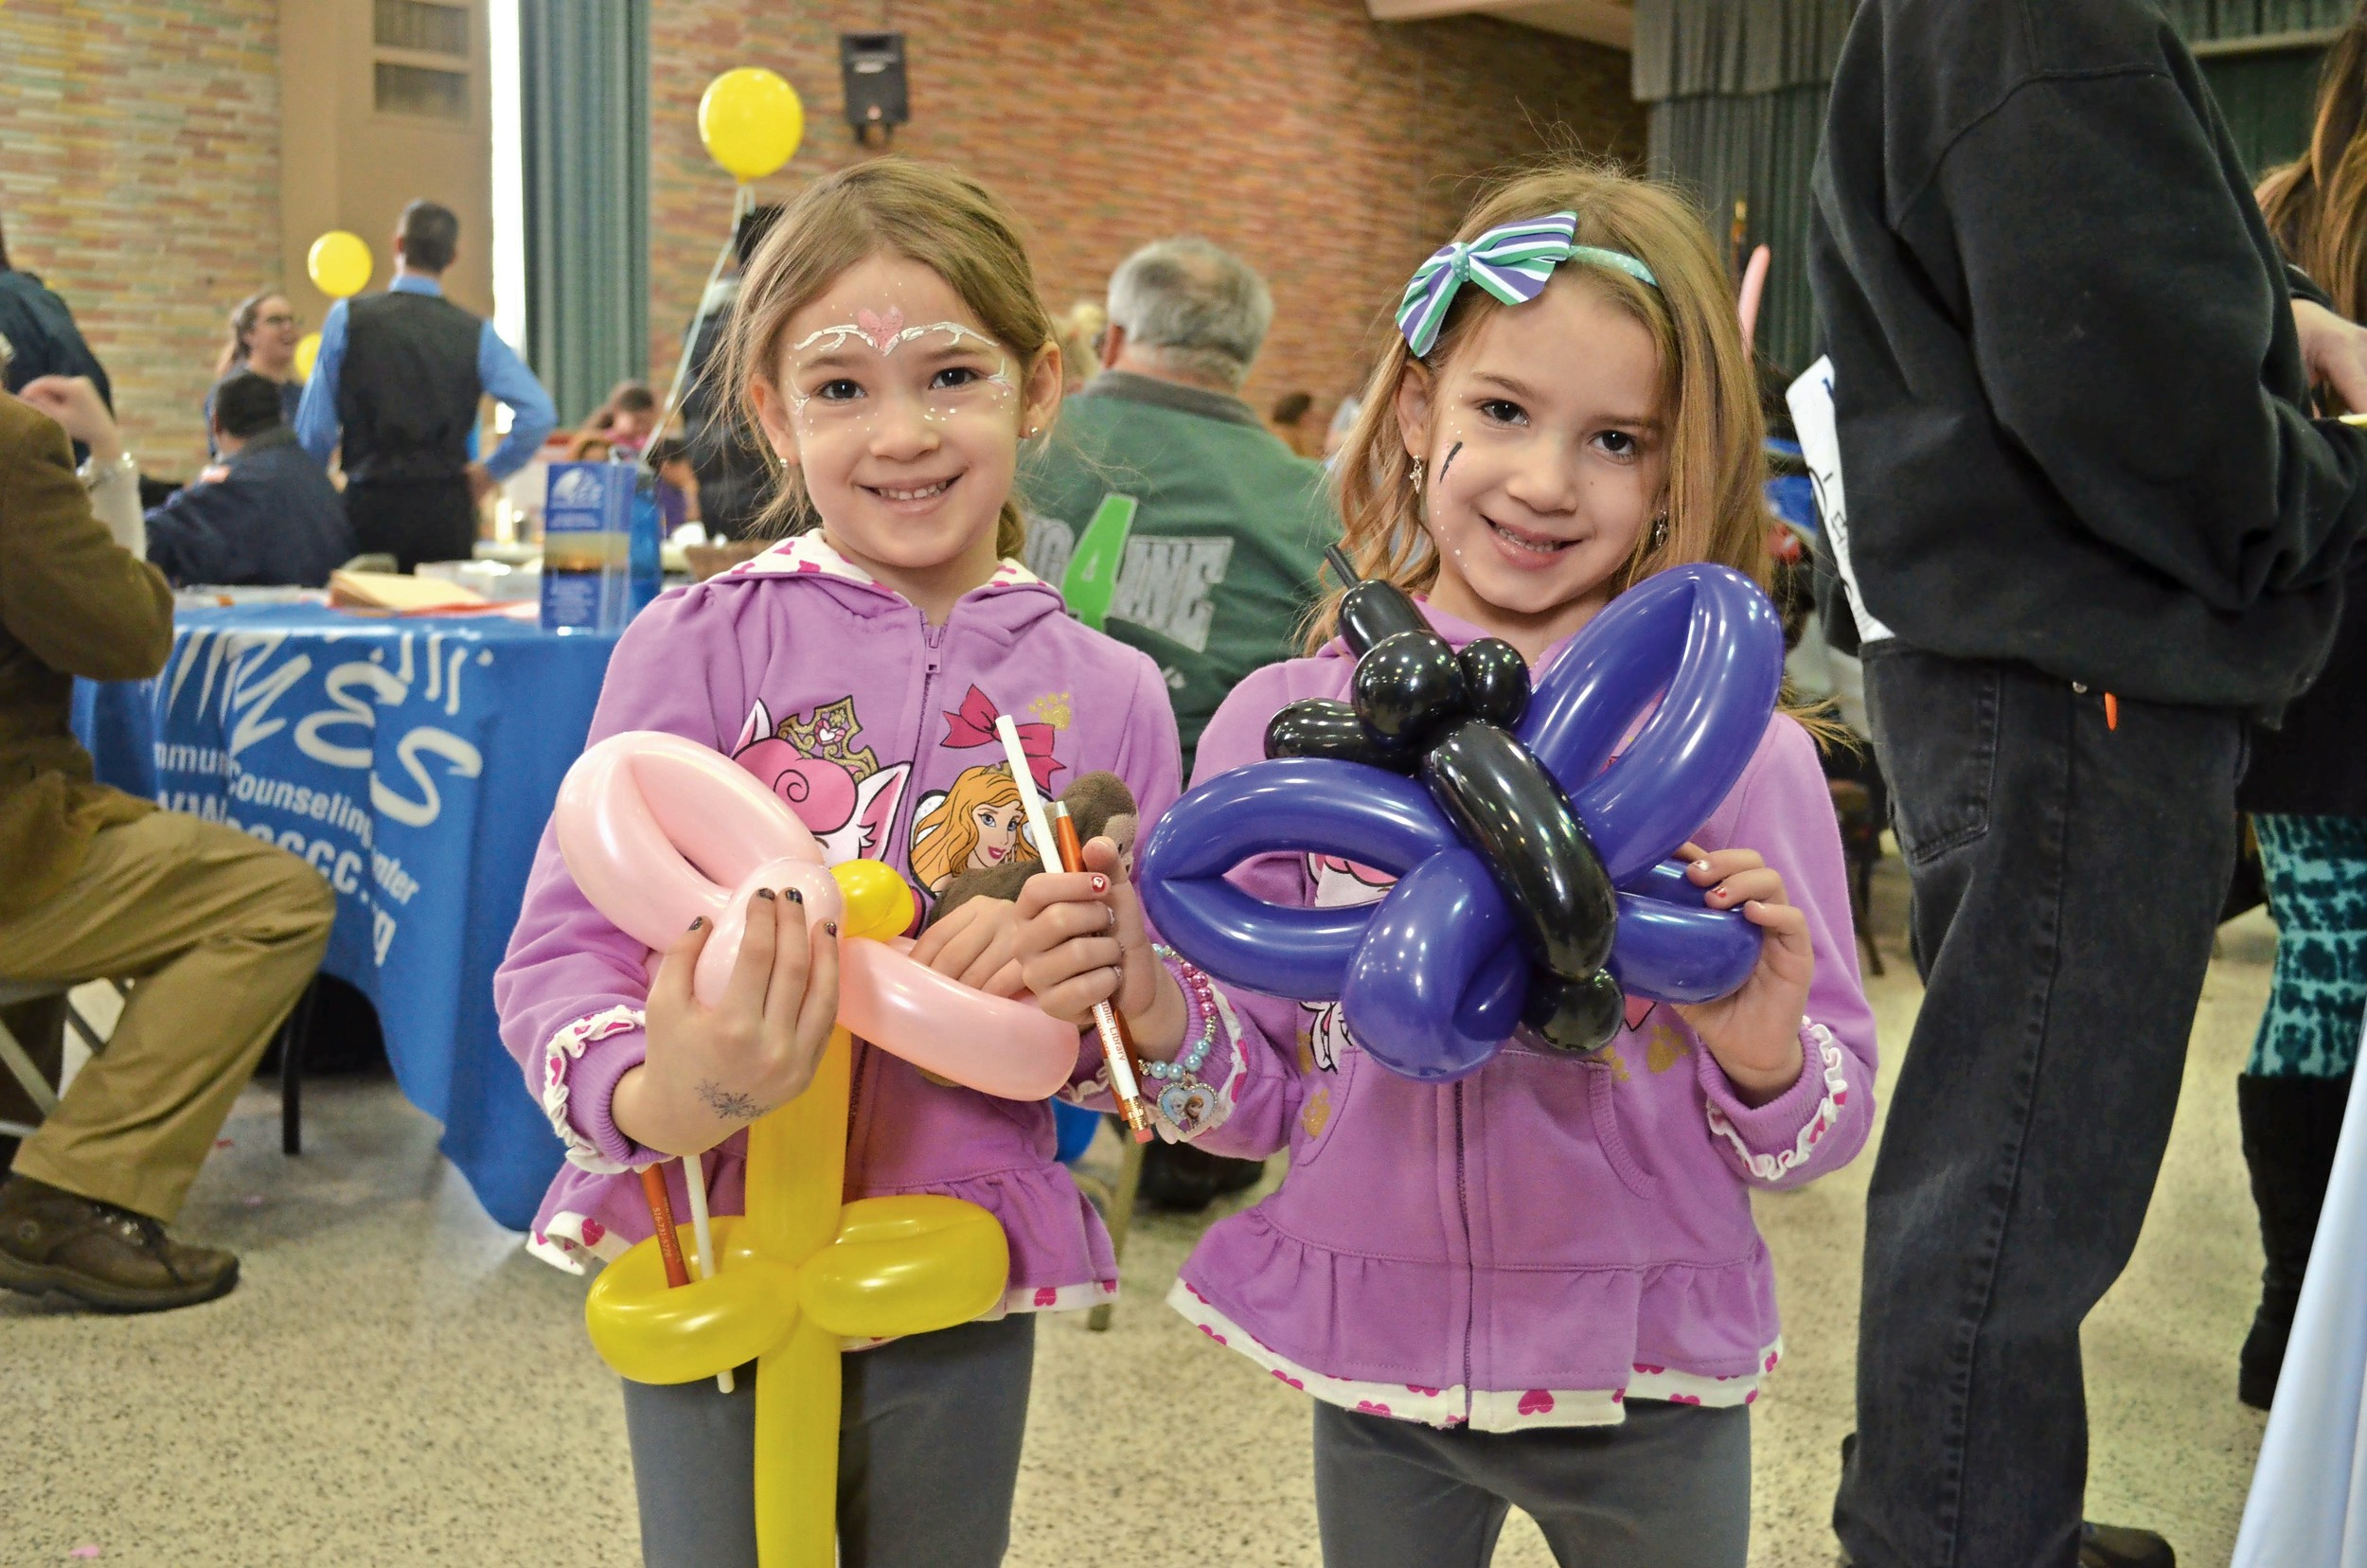 Julianna Duarte, left, and Gabriella Duarte made balloon animals for each other.